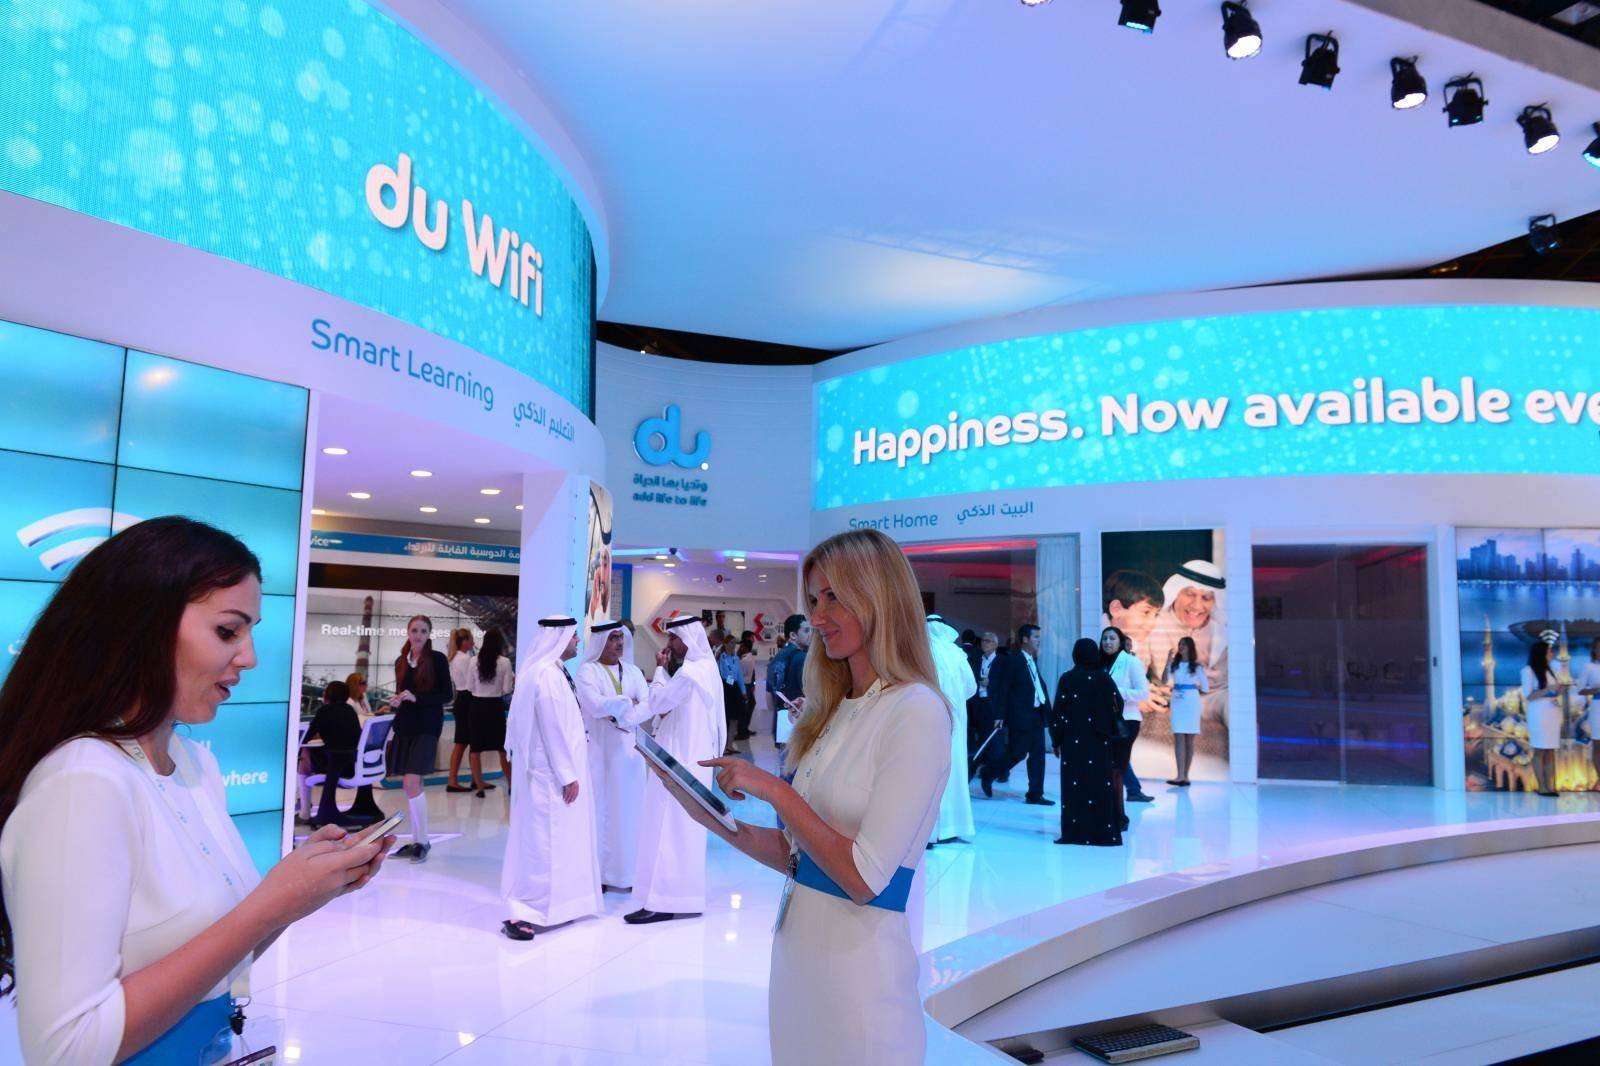 The-Higher-committee-for-Smart-Dubai-Initiative-selects-du-as-Smart-City-Official-WiFi-Provider-in-Dubai